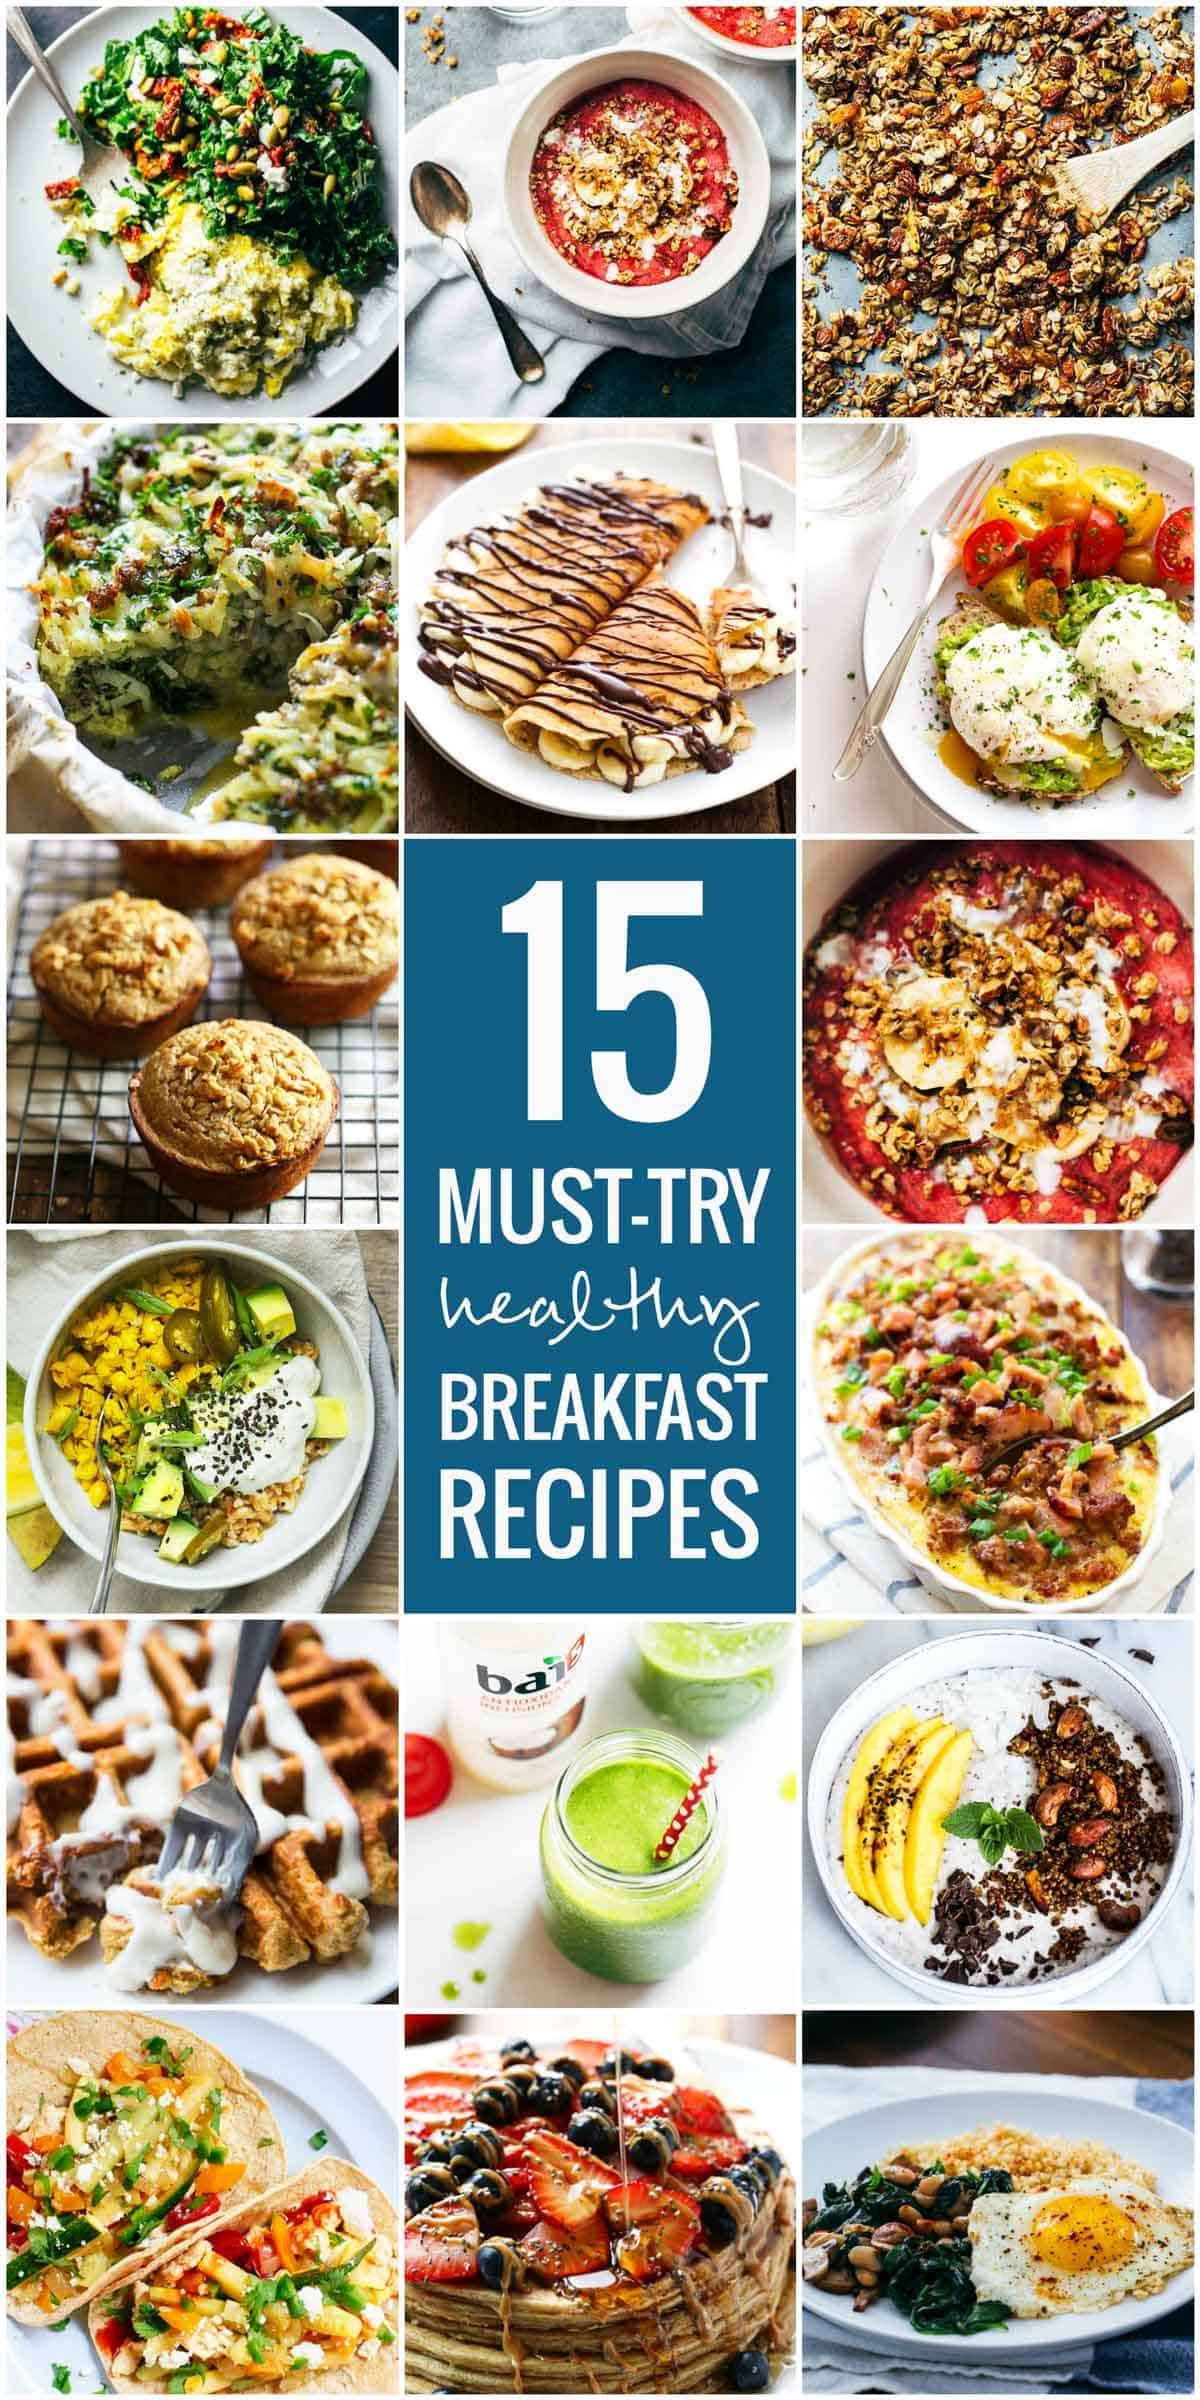 15 Must-Try Healthy Breakfasts collage of images.